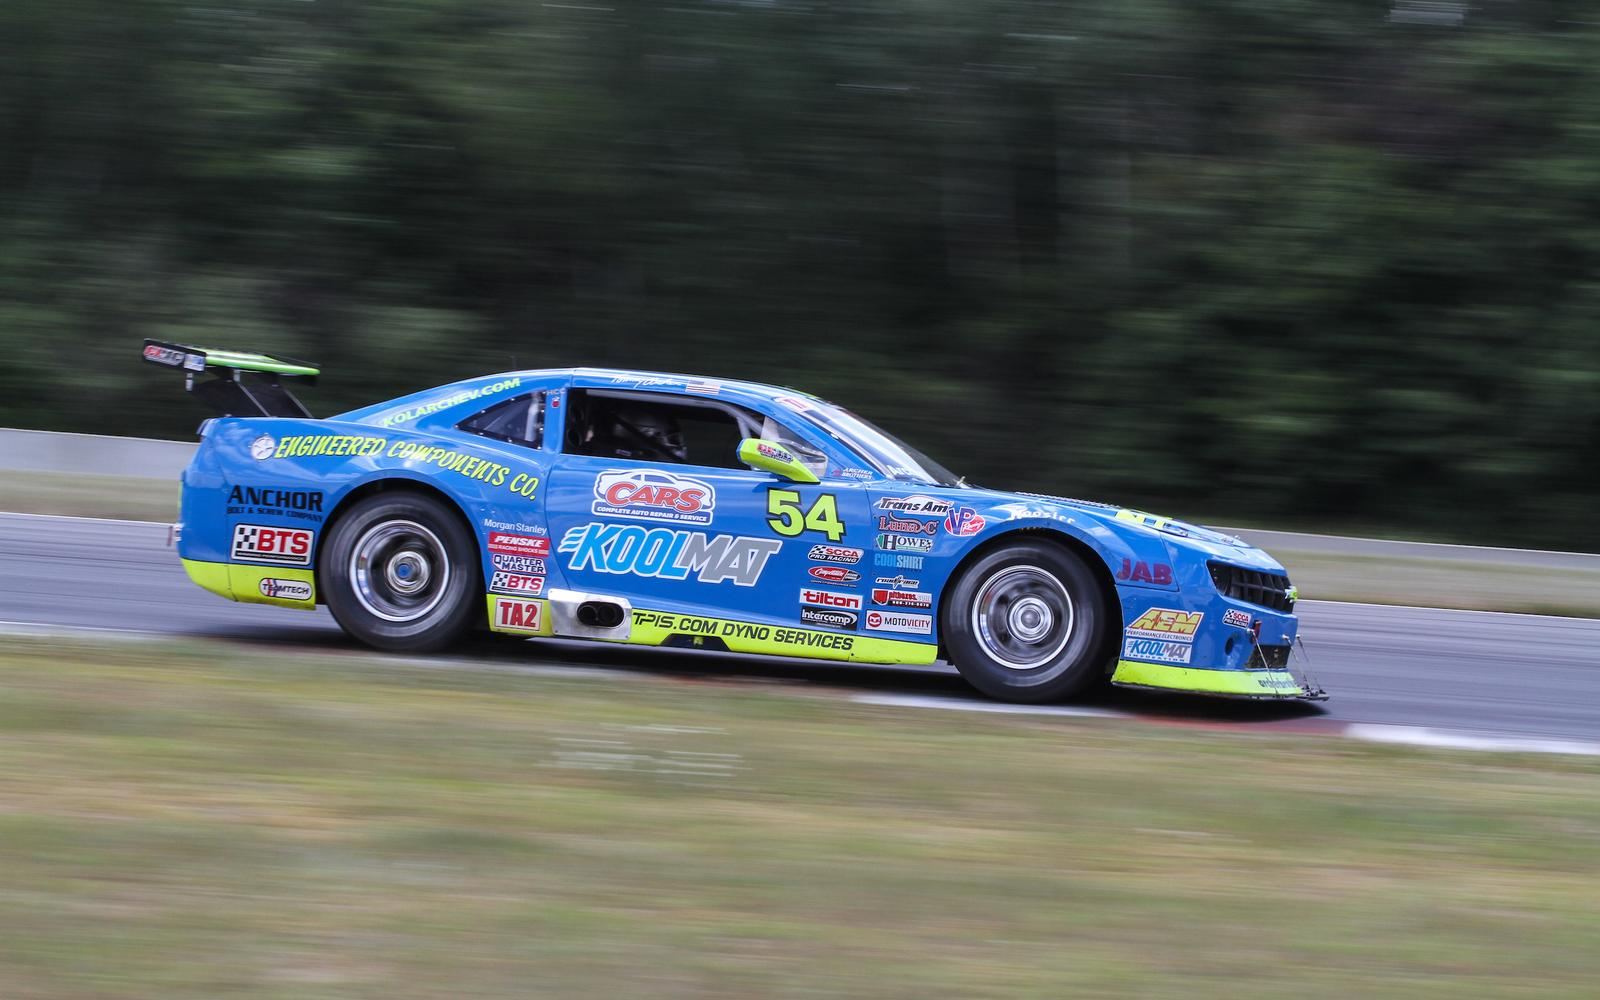 Archer and Andretti aim for podium finishes at Mid-Ohio